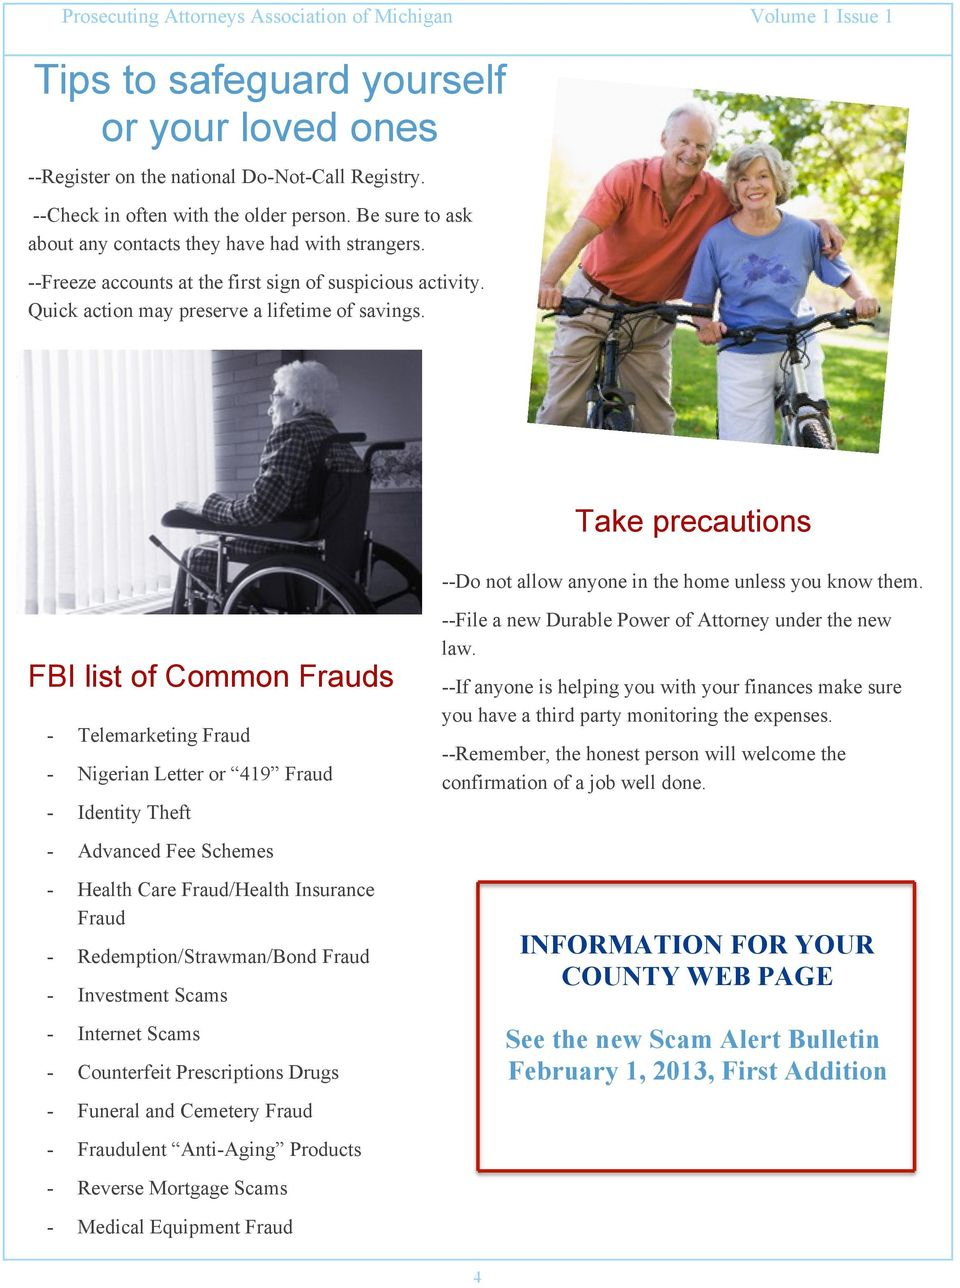 FBI list of Common Frauds - Telemarketing Fraud - Nigerian Letter or 419 Fraud - Identity Theft - Advanced Fee Schemes - Health Care Fraud/Health Insurance Fraud - Redemption/Strawman/Bond Fraud -